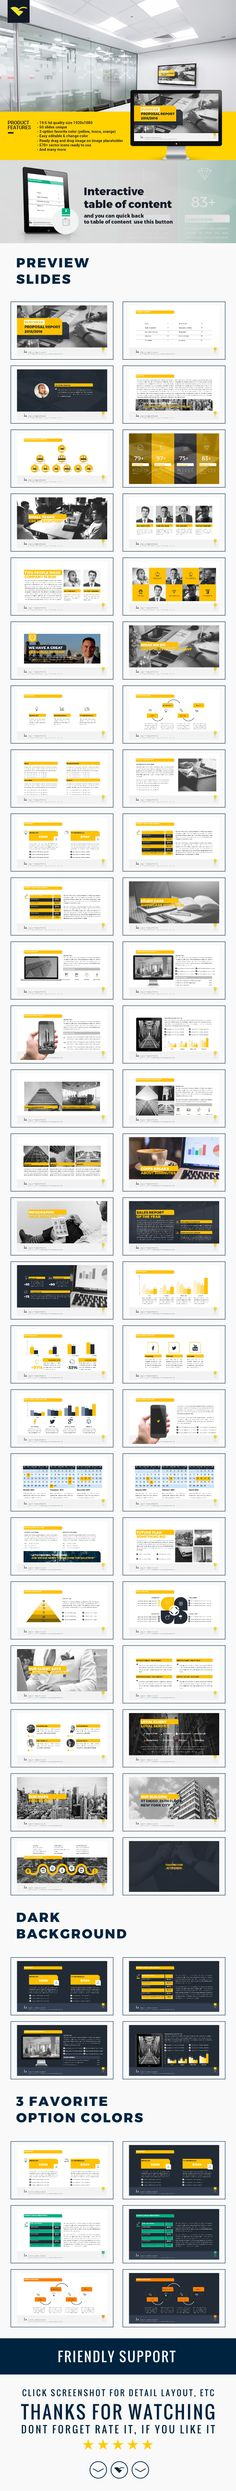 16 PowerPoint Templates That Look Great in 2017 Creative - business annual report template